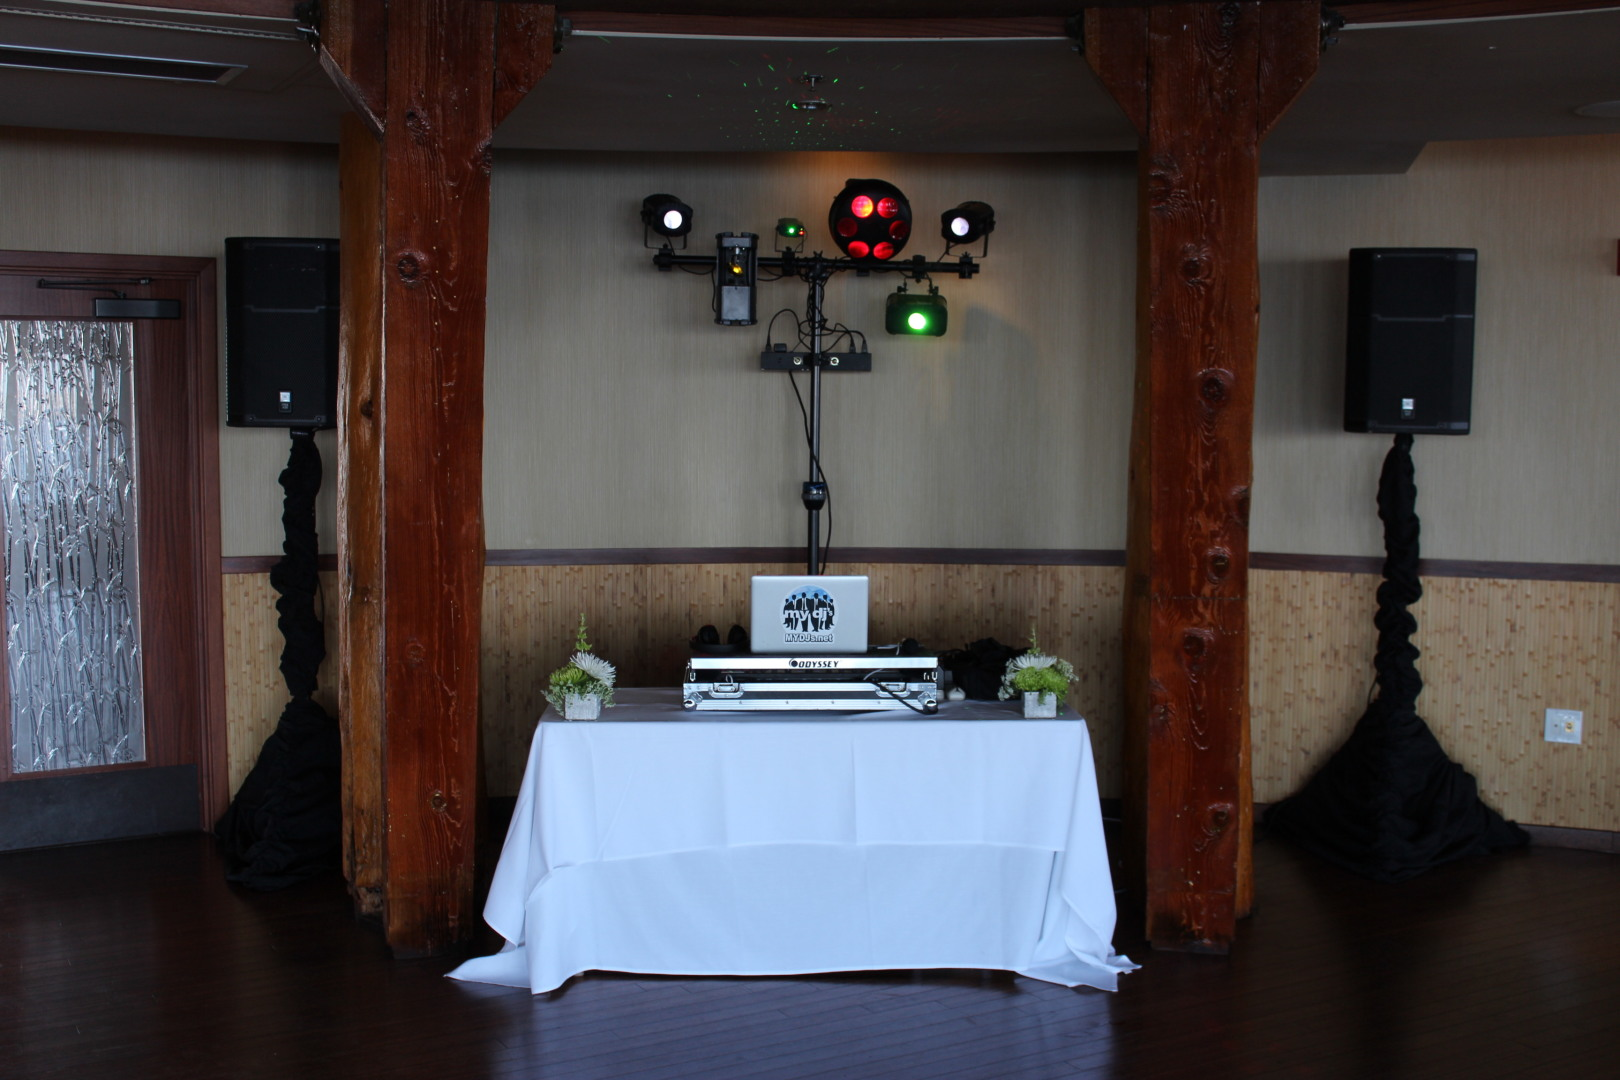 MY DJs Reception Setup with Party Lights at Bali Hai & MY DJs Reception Setup with Party Lights at Bali Hai » San Diego DJs ...